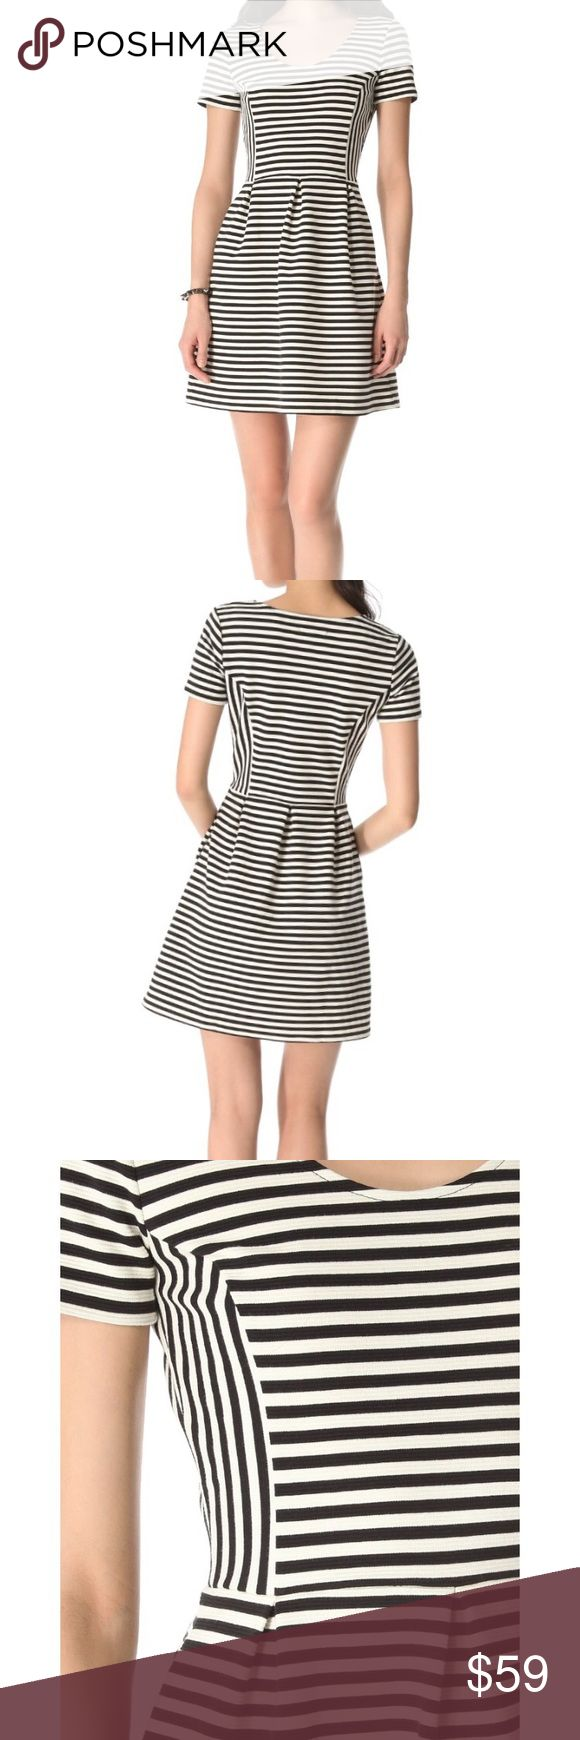 Madewell Dress Bold stripes bring graphic perspective to a beautifully classic Madewell dress. Princess seams contour the fitted bodice, and inverted pleats add a hint of volume to the skirt. Perfect for any season, wear with tights and a jacket in winter and your favorite sandals in the spring! Has pockets!  Lovely Mid-weight jersey with just the right thickness and stretch. Hidden side zip. Length is approx 33in from shoulder. Only worn once! Excellent like new condition! Make an offer…